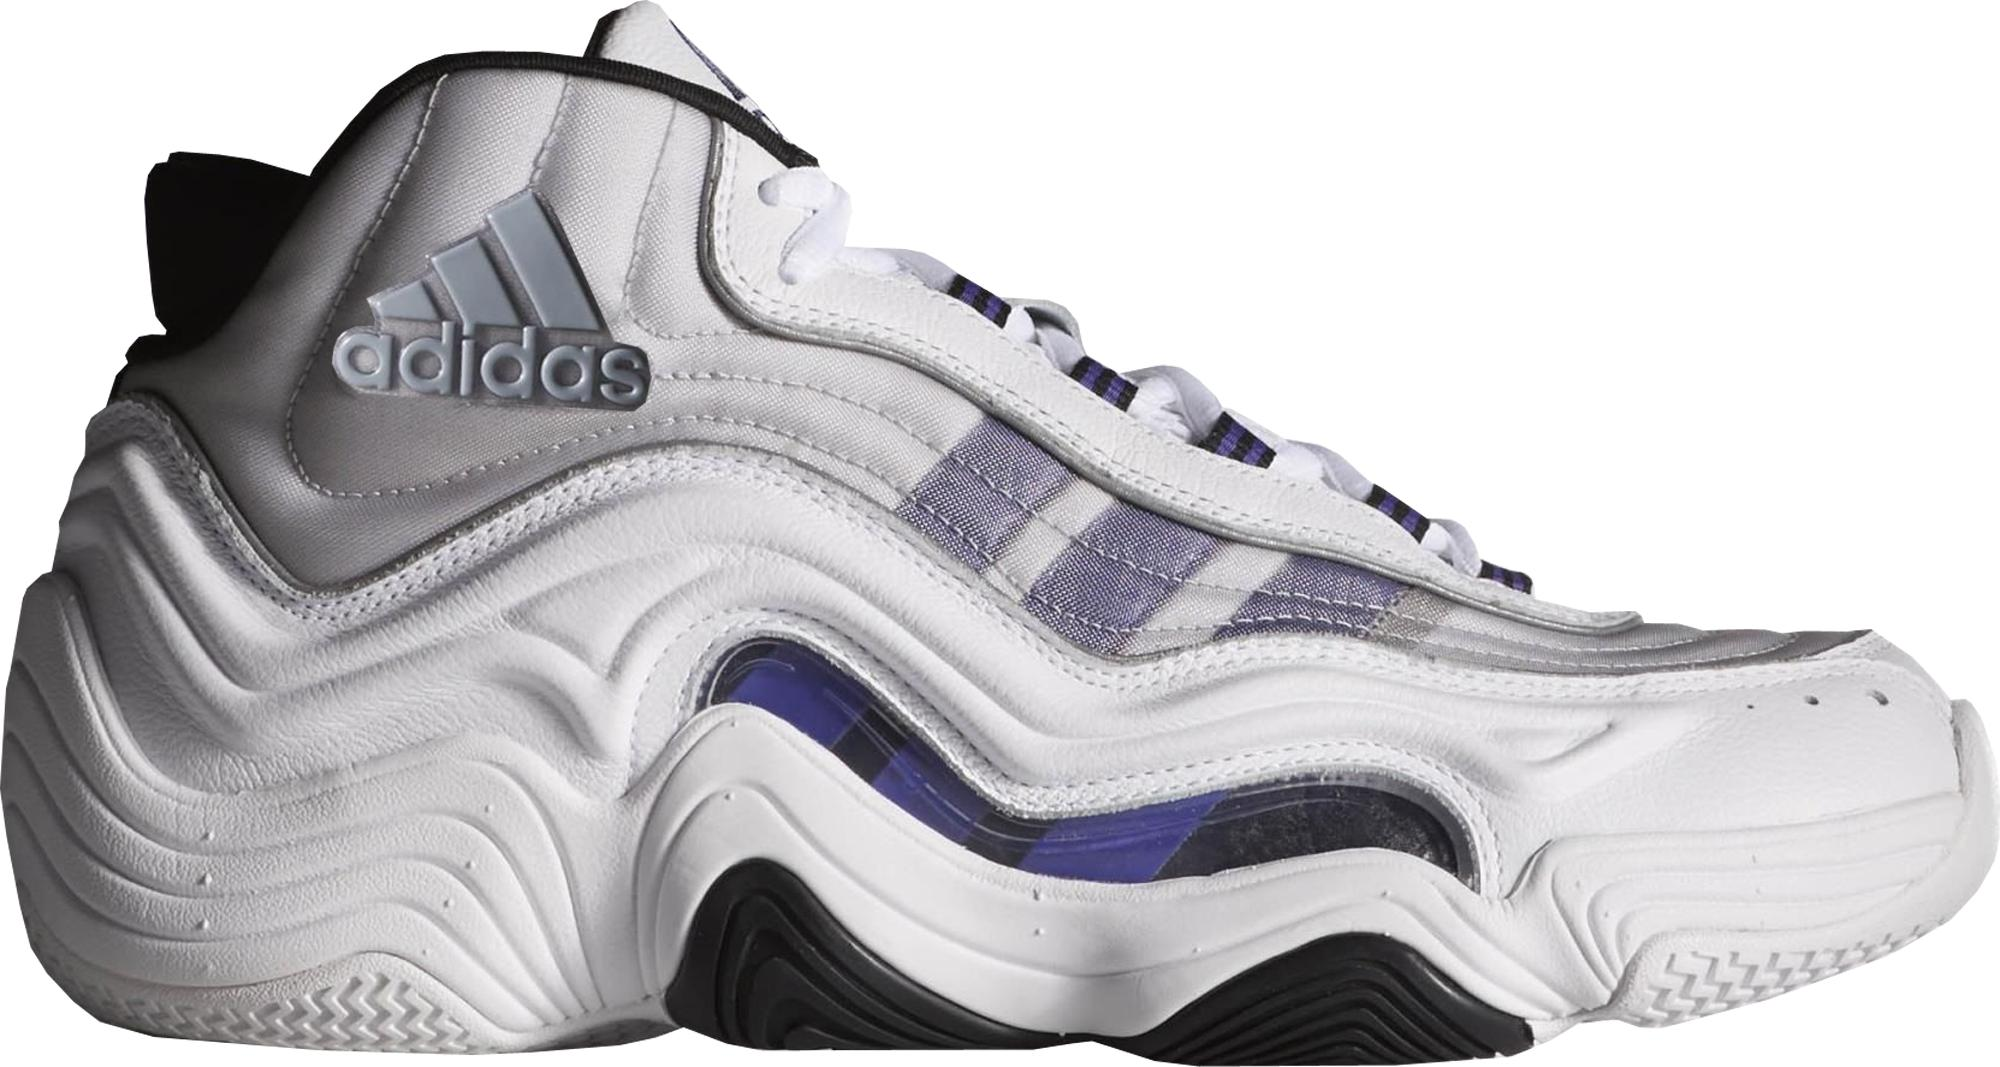 adidas Crazy 2 Kobe Home in White for